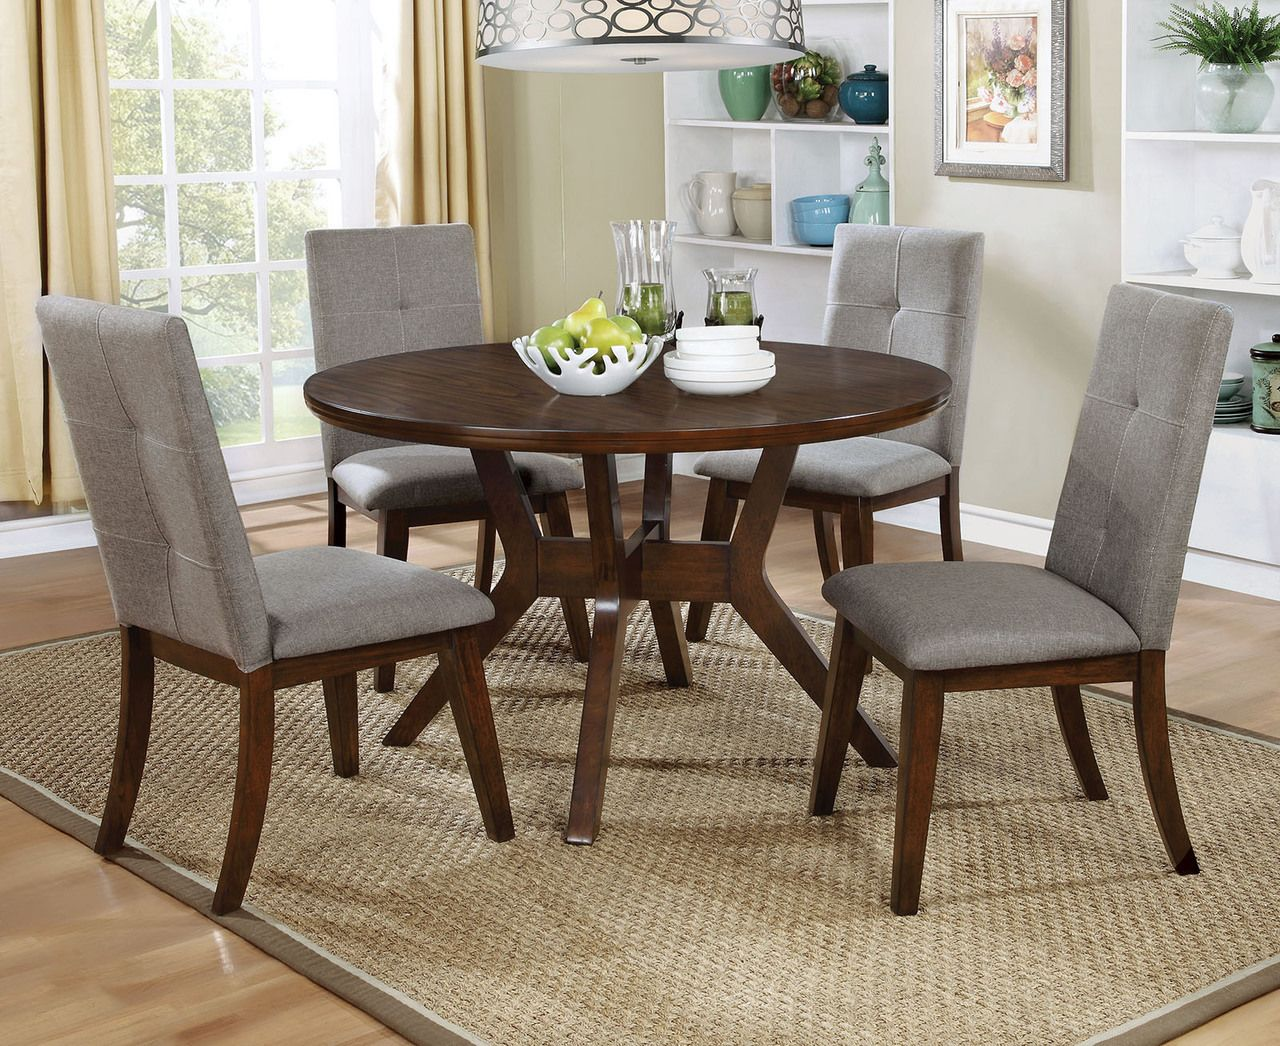 Furniture Of America Walnut Round Dining Table Set Round Dining Table Sets Round Dining Room Sets Midcentury Modern Dining Table